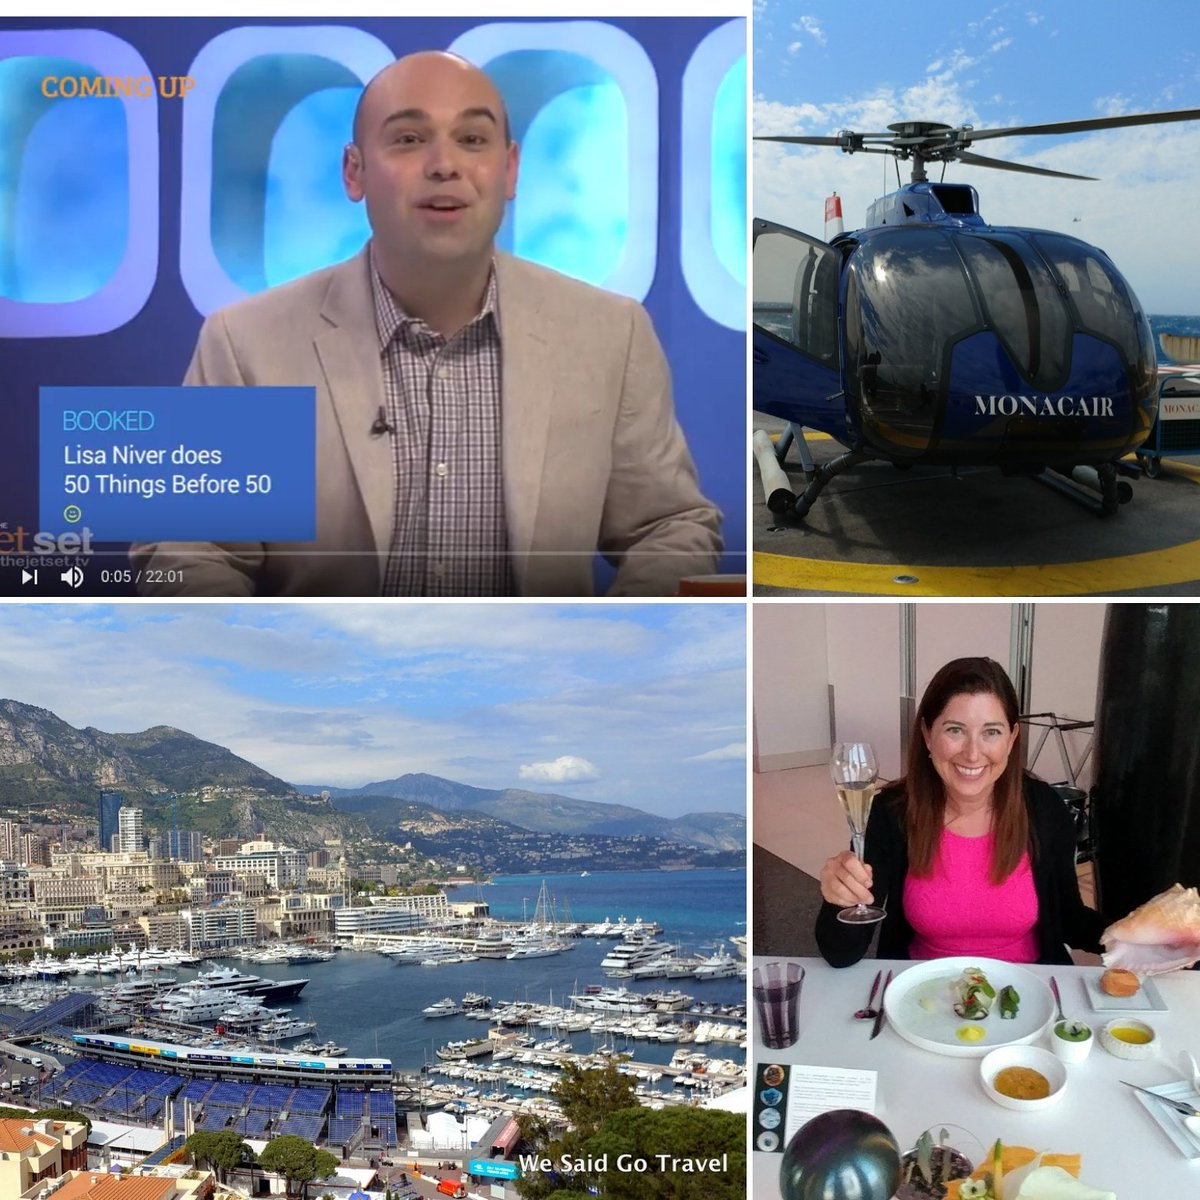 Join me for Episode 17 @TheJetSetTV in #Monaco! Watch now: http:// wesaidgotravel.com/tvmonaco  &nbsp;   #visitmonaco @fia #formulaE #thejetsettv #travel<br>http://pic.twitter.com/x8bZ8BF4ho